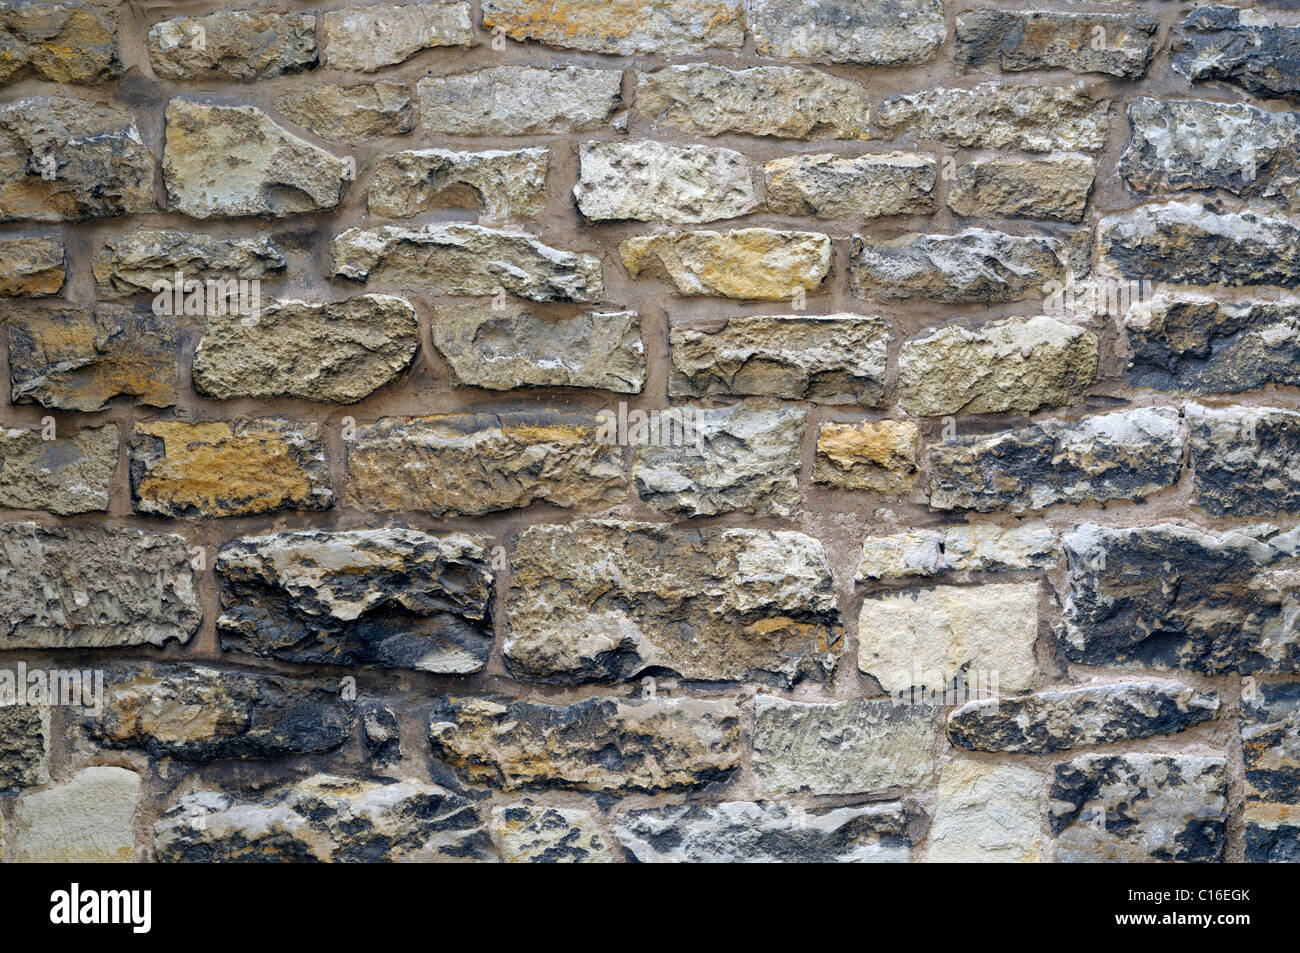 Quarry stone wall, texture - Stock Image